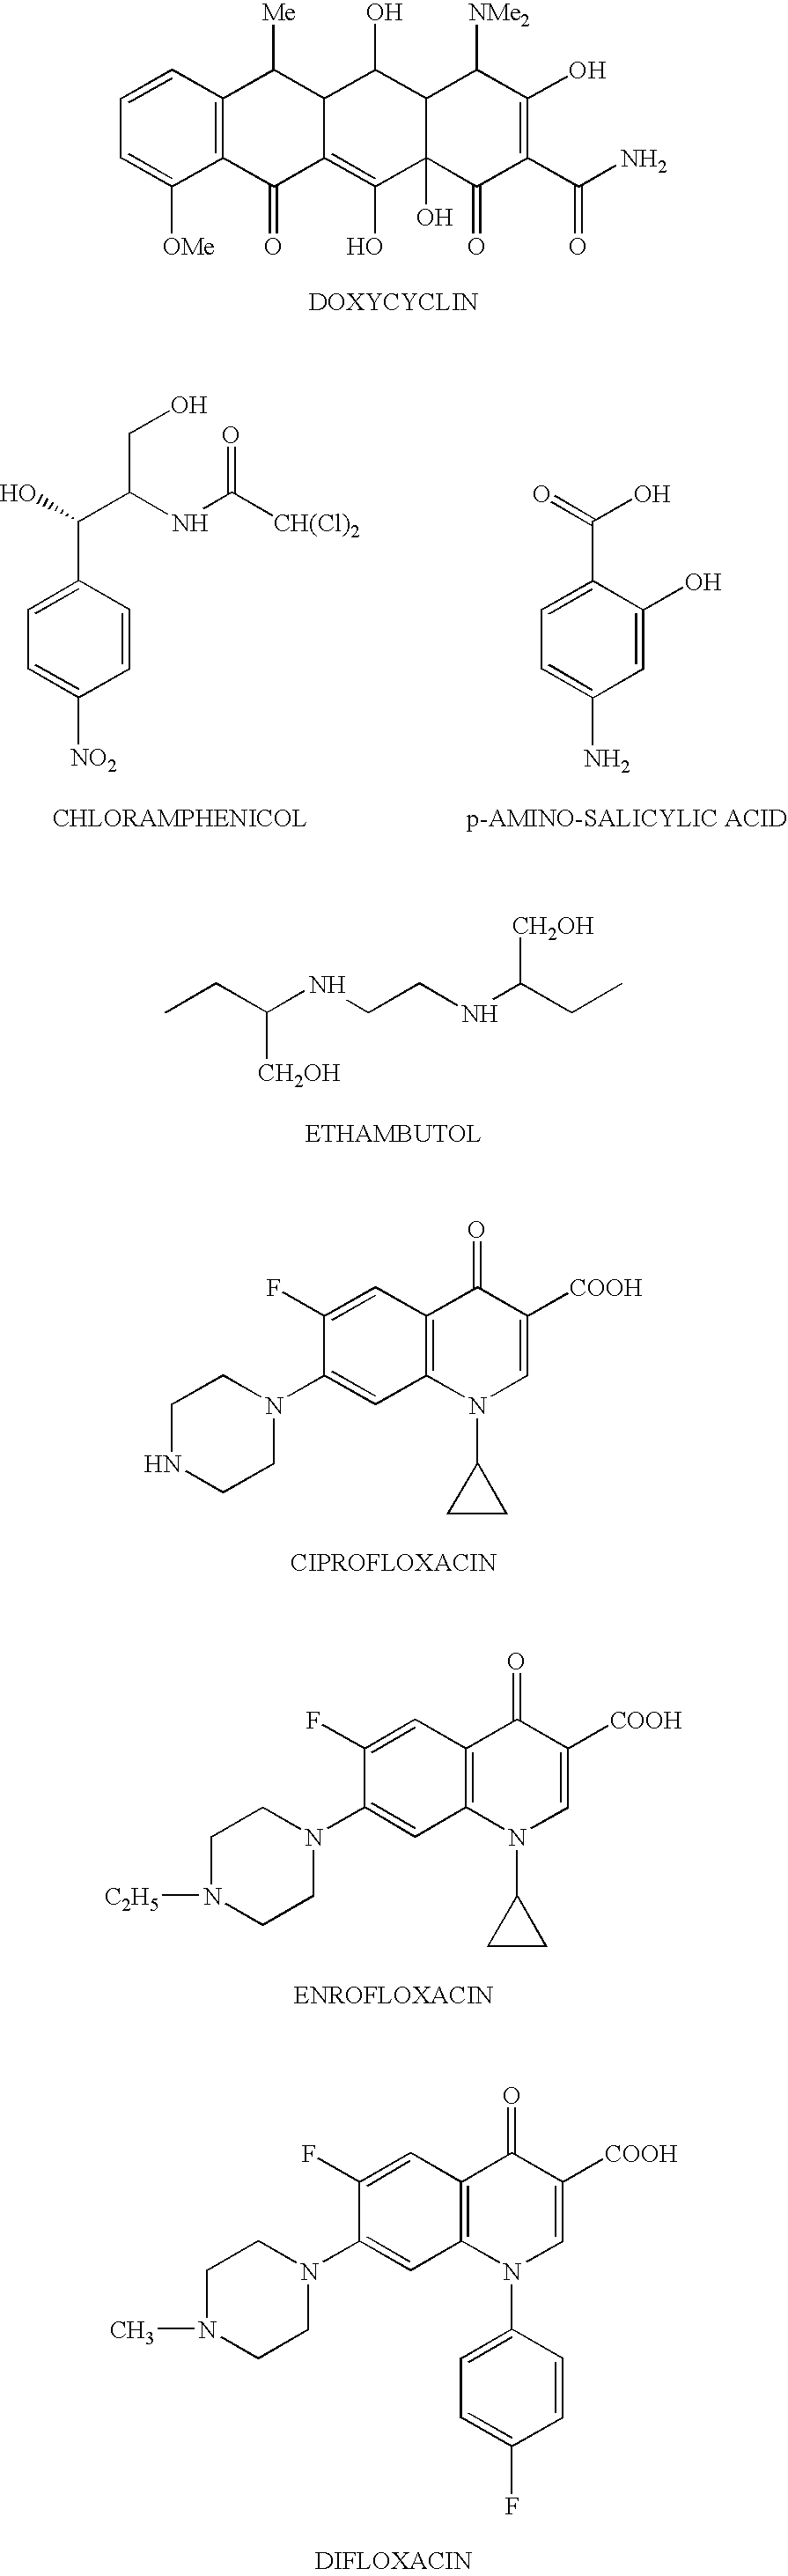 Us20030153544a1 Fatty Acid Derivatives Google Patents Process Flow Diagram Salicylic Figure 20030814 C00025